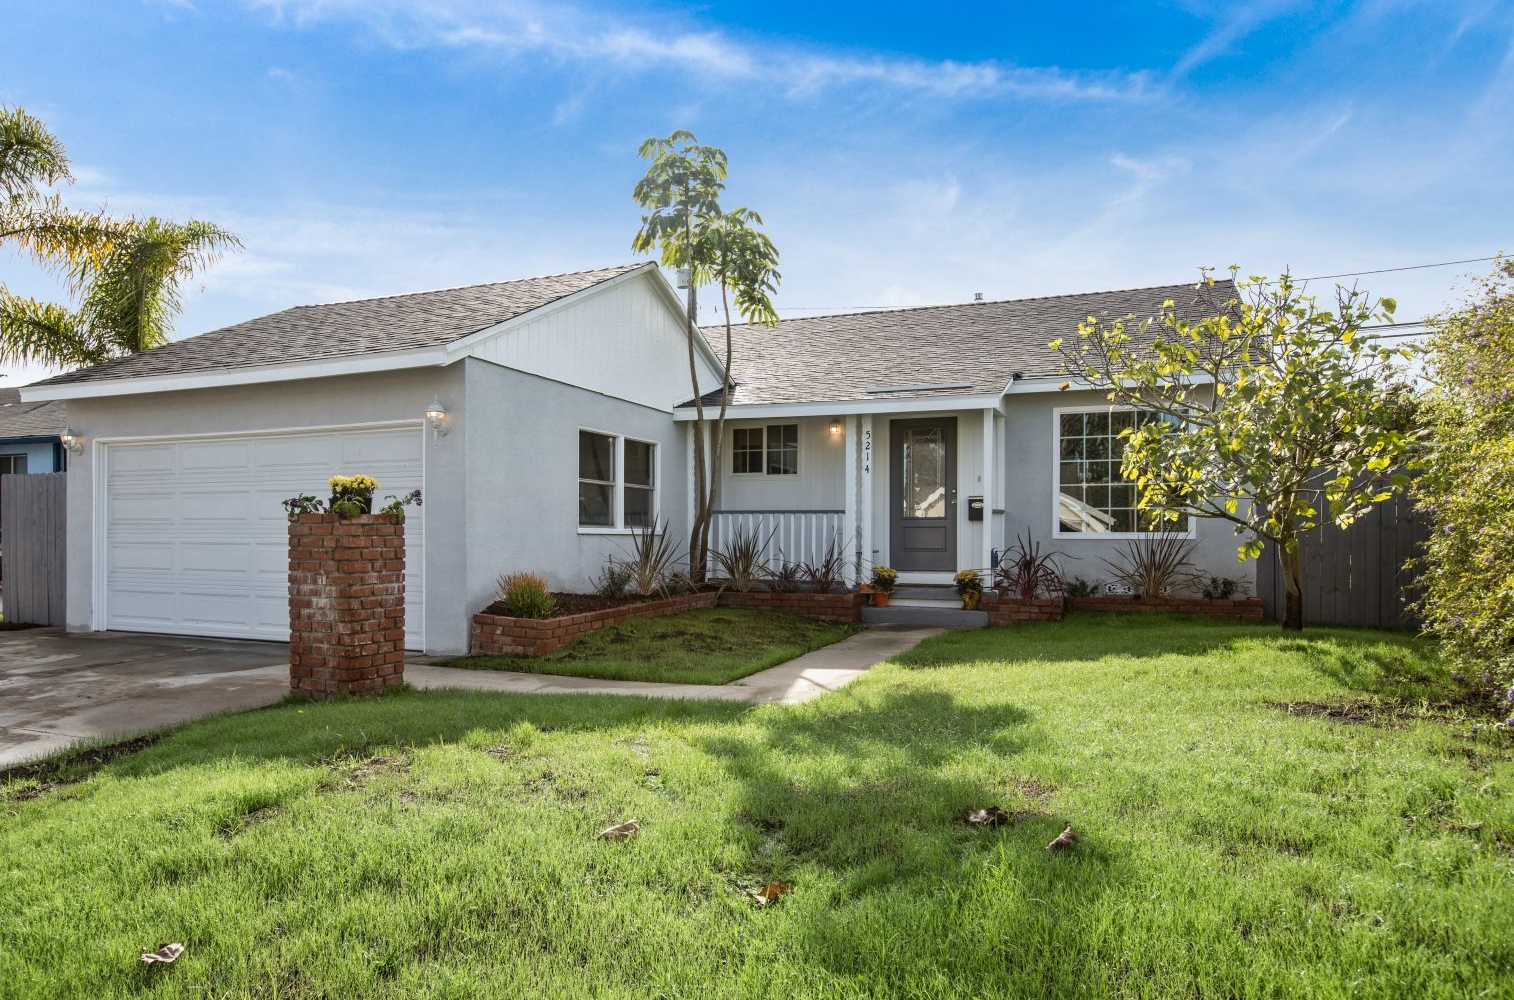 SOLD! Lovely Remodeled West Torrance Home!